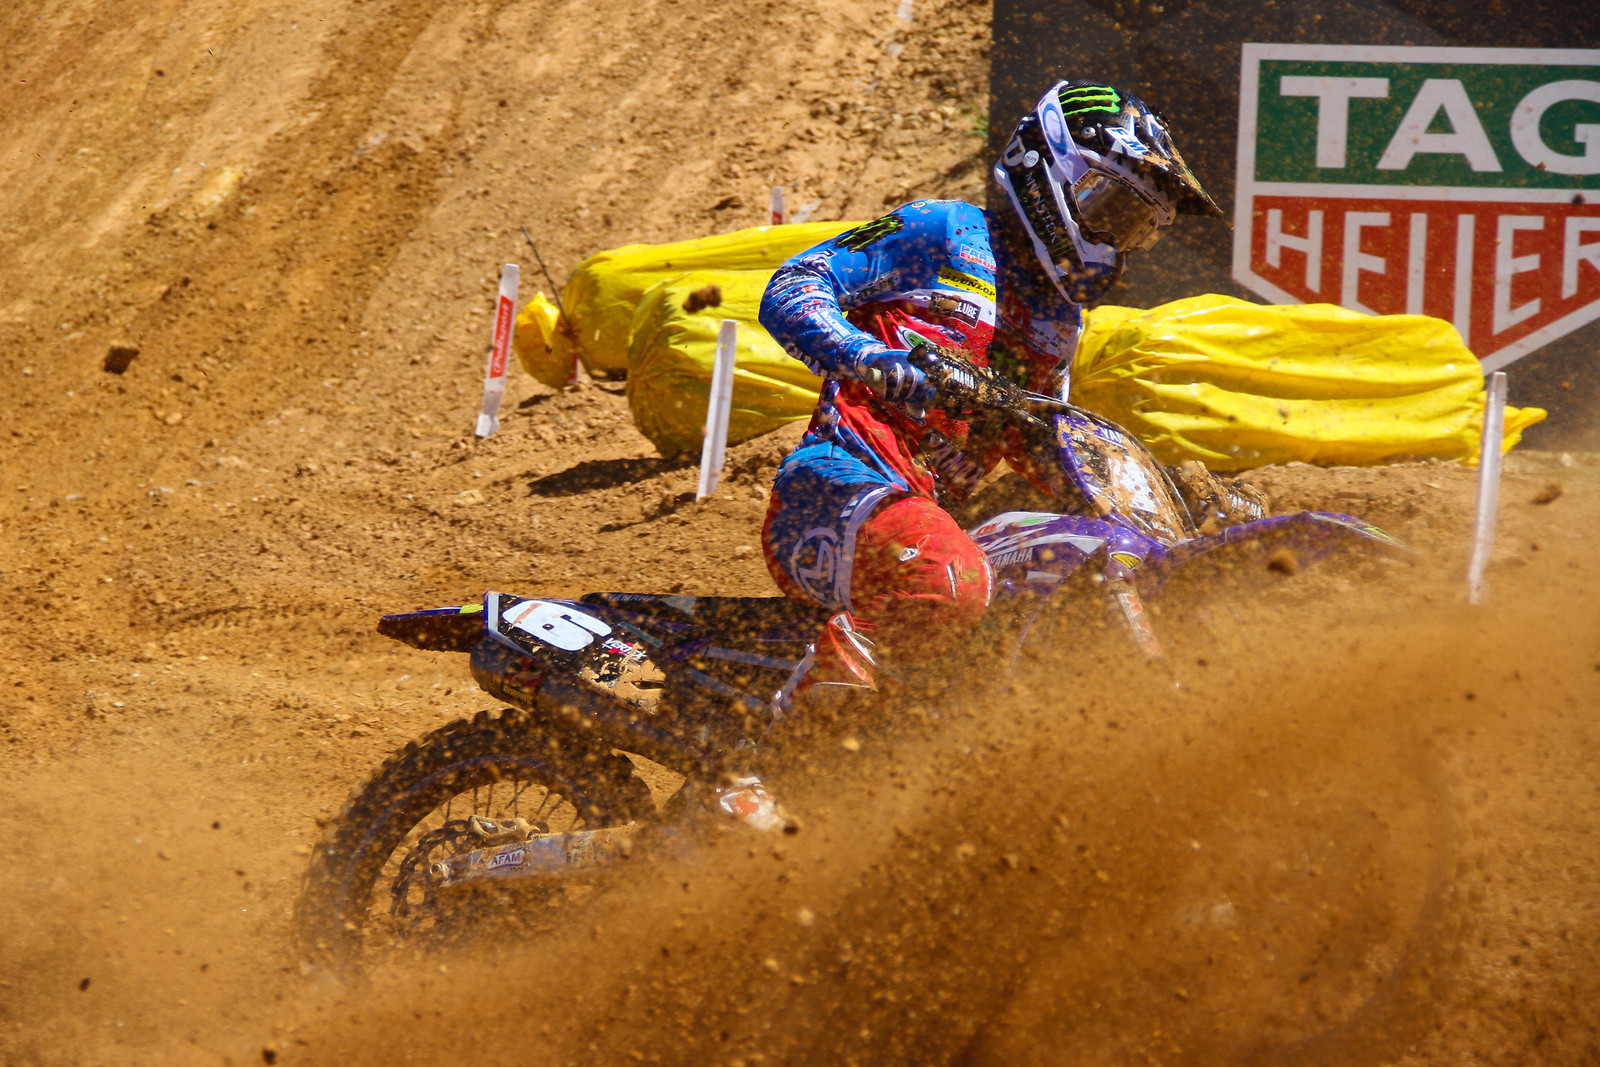 Benoit Paturel - ayearinmx - Motocross Pictures - Vital MX